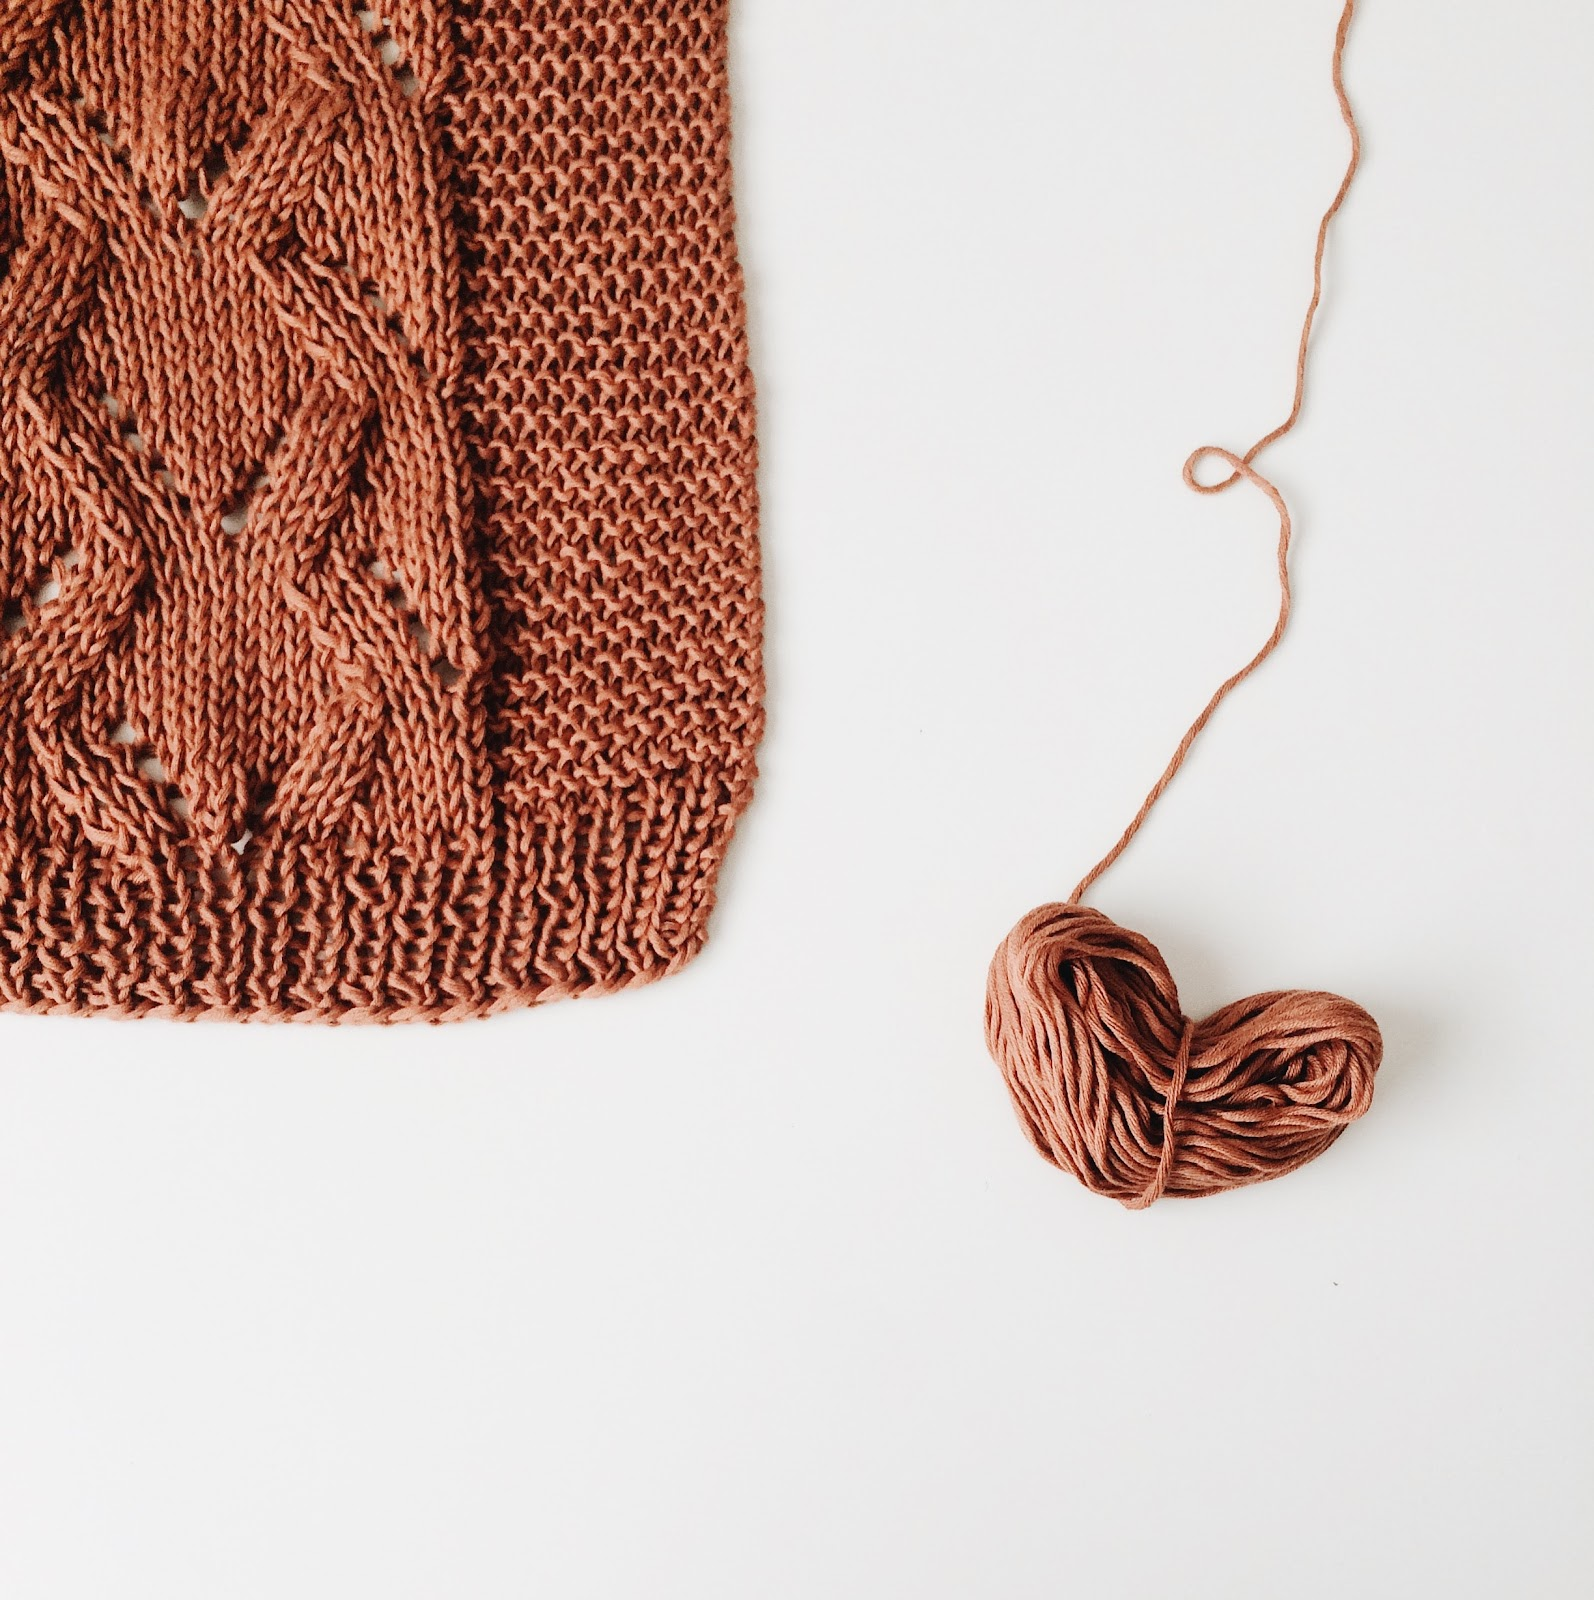 yarn in a heart shape next to a knitted sweater